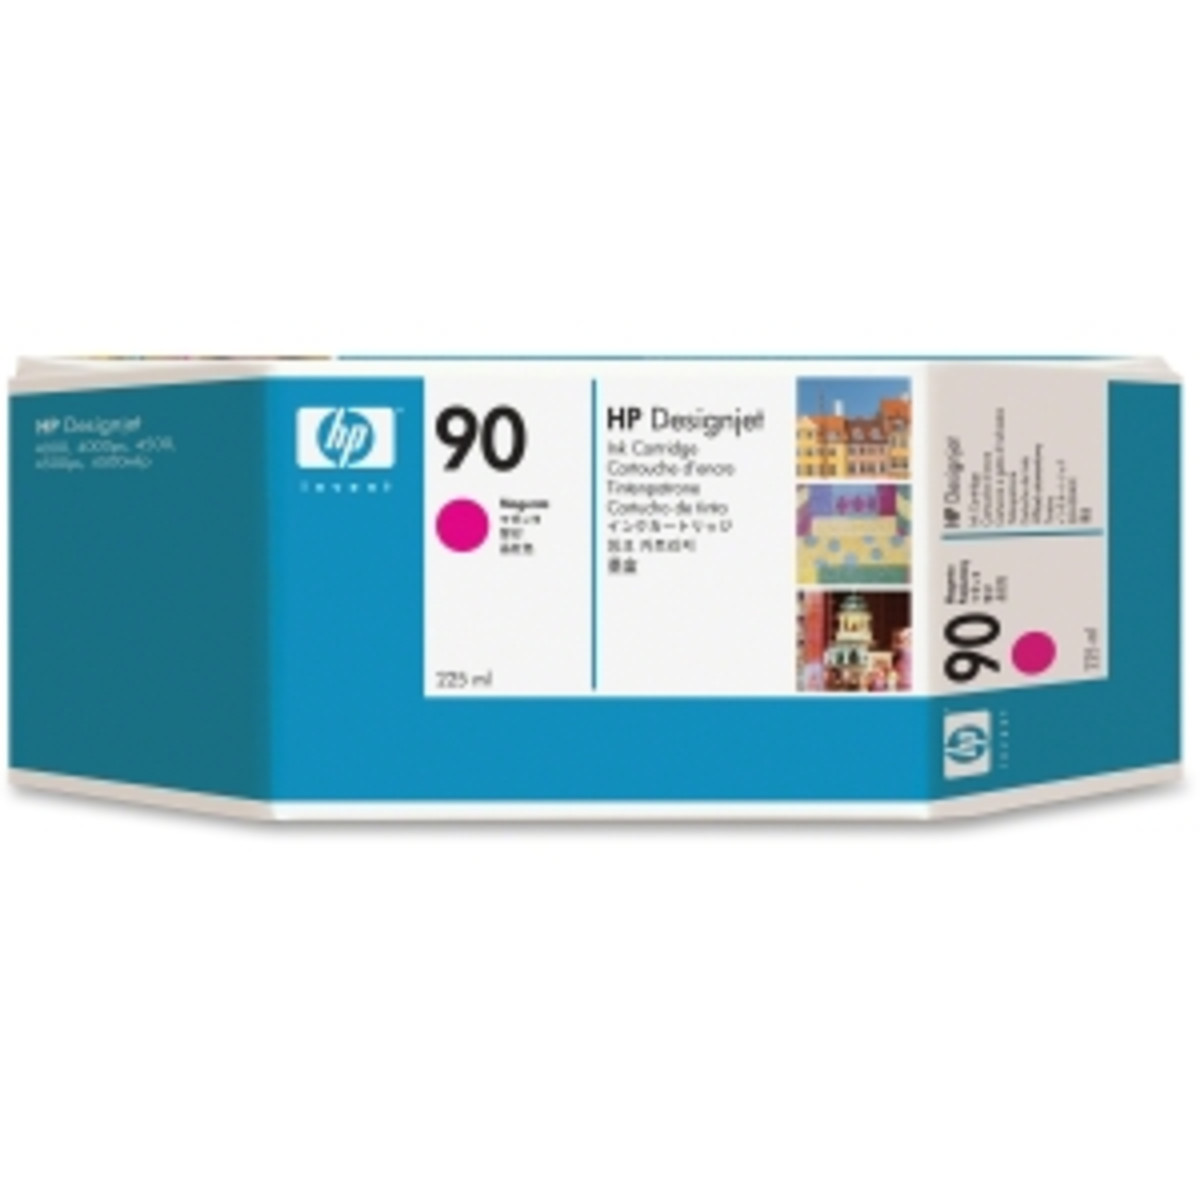 HP 90 (C5062A) Magenta Ink Cartridge